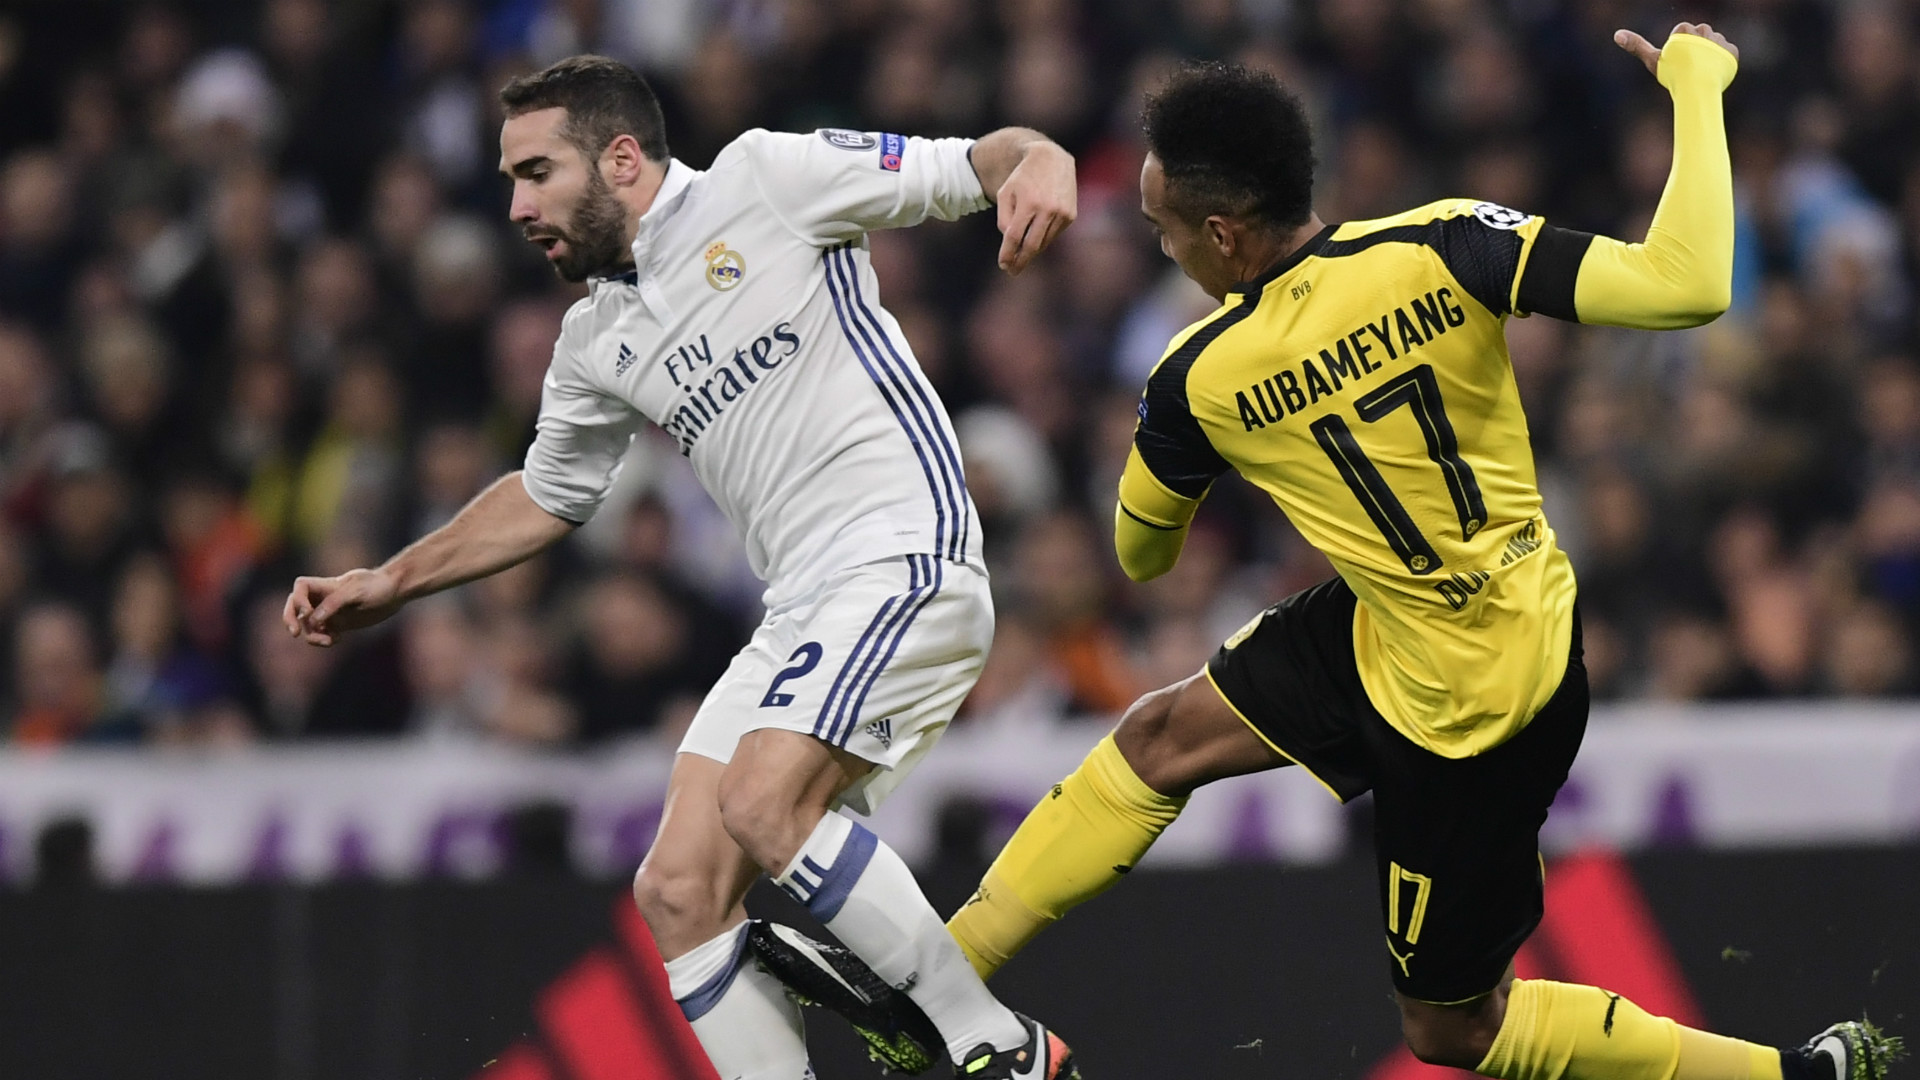 Carvajal Aubameyang Real Madrid Borussia Dortmund Champions League